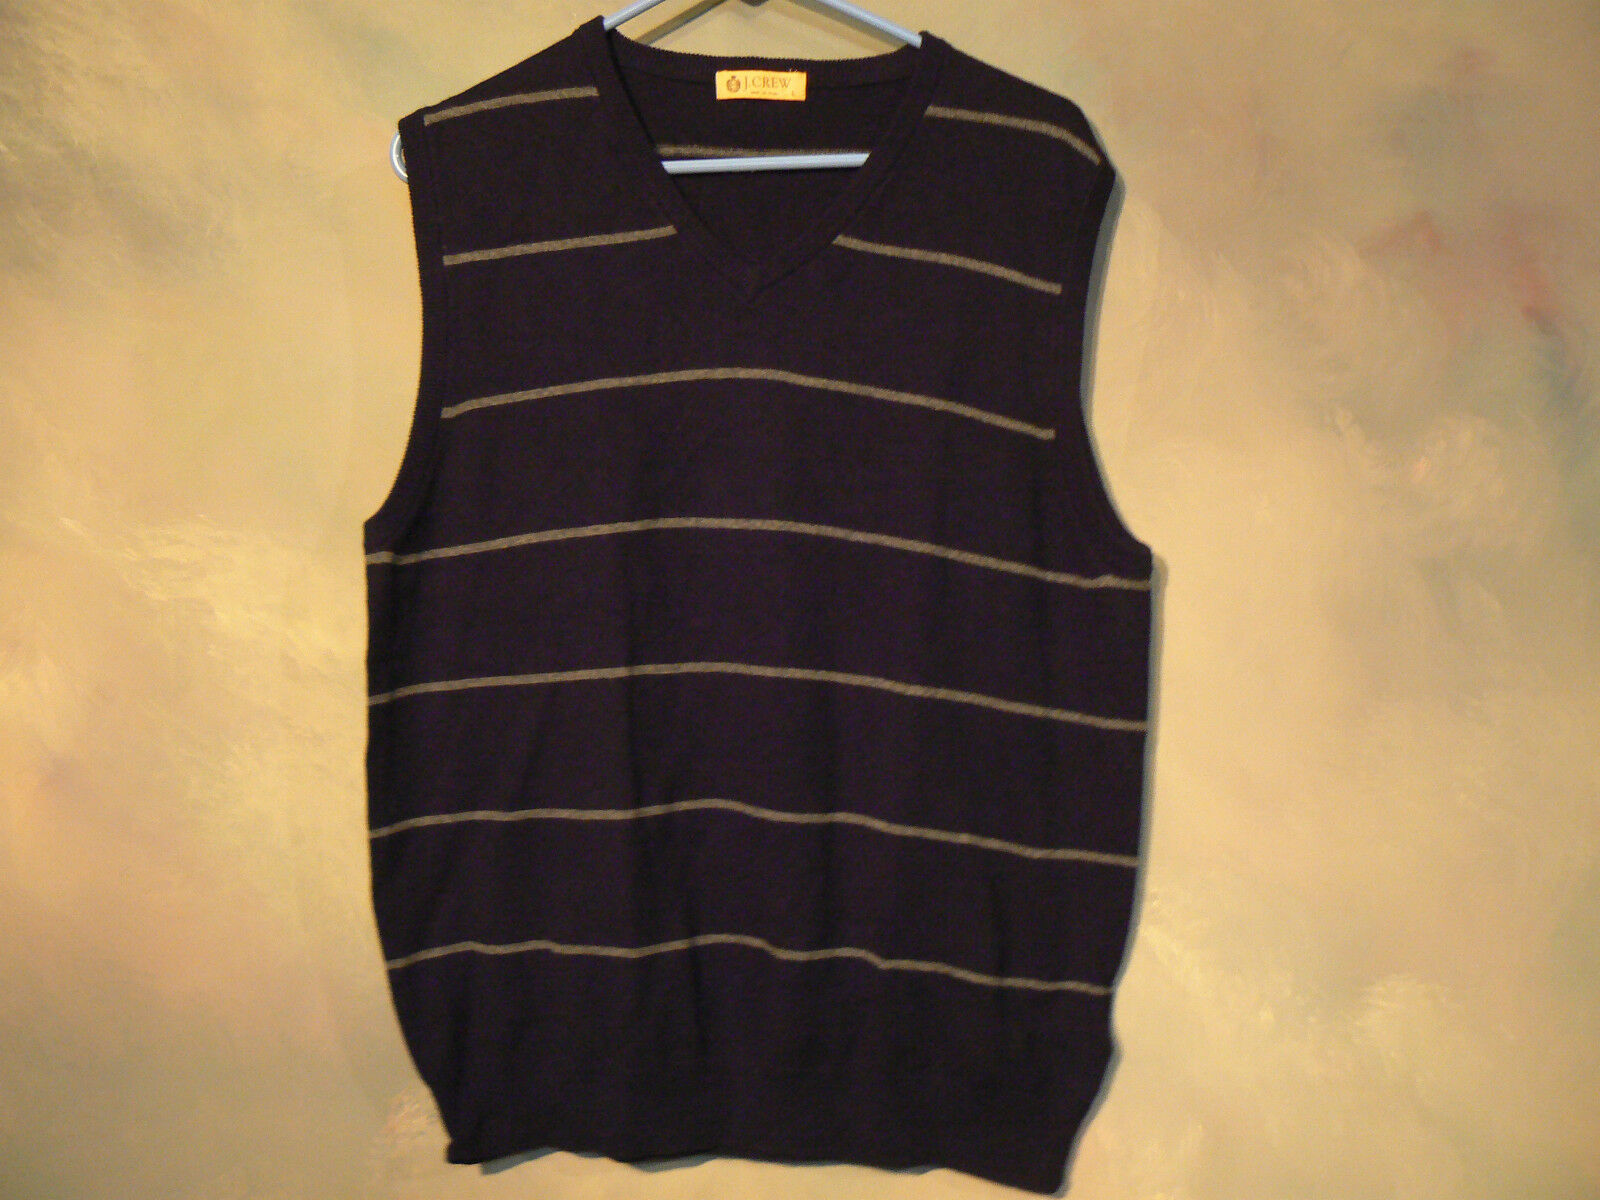 NEW WITHOUT TAGS J CREW MENS COTTON-CASHMERE NAVY / GRAY SWEATER VEST SIZE LARGE